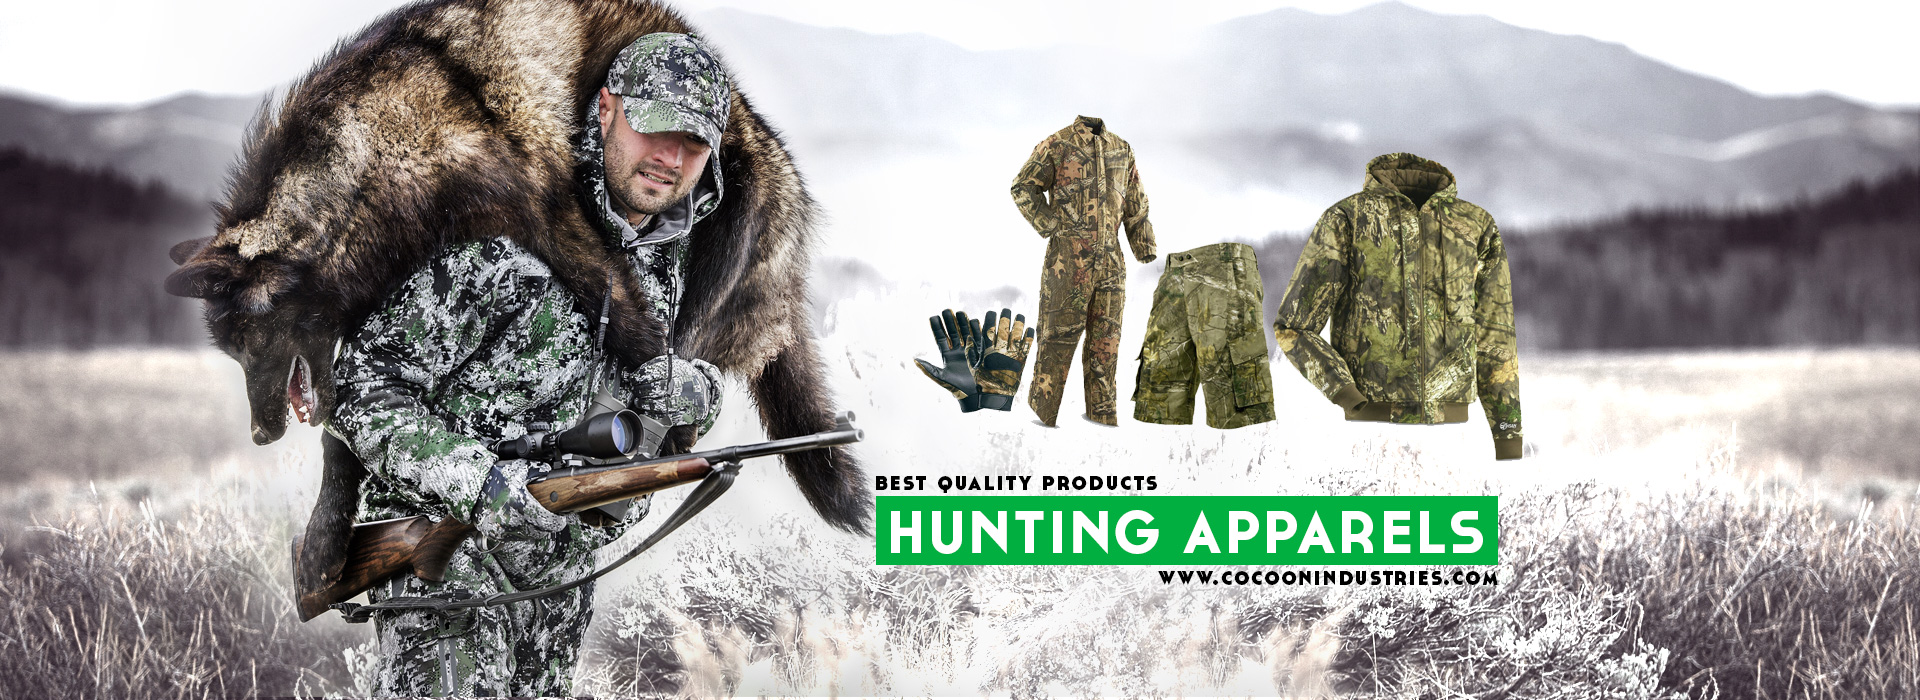 Hunting Apparels